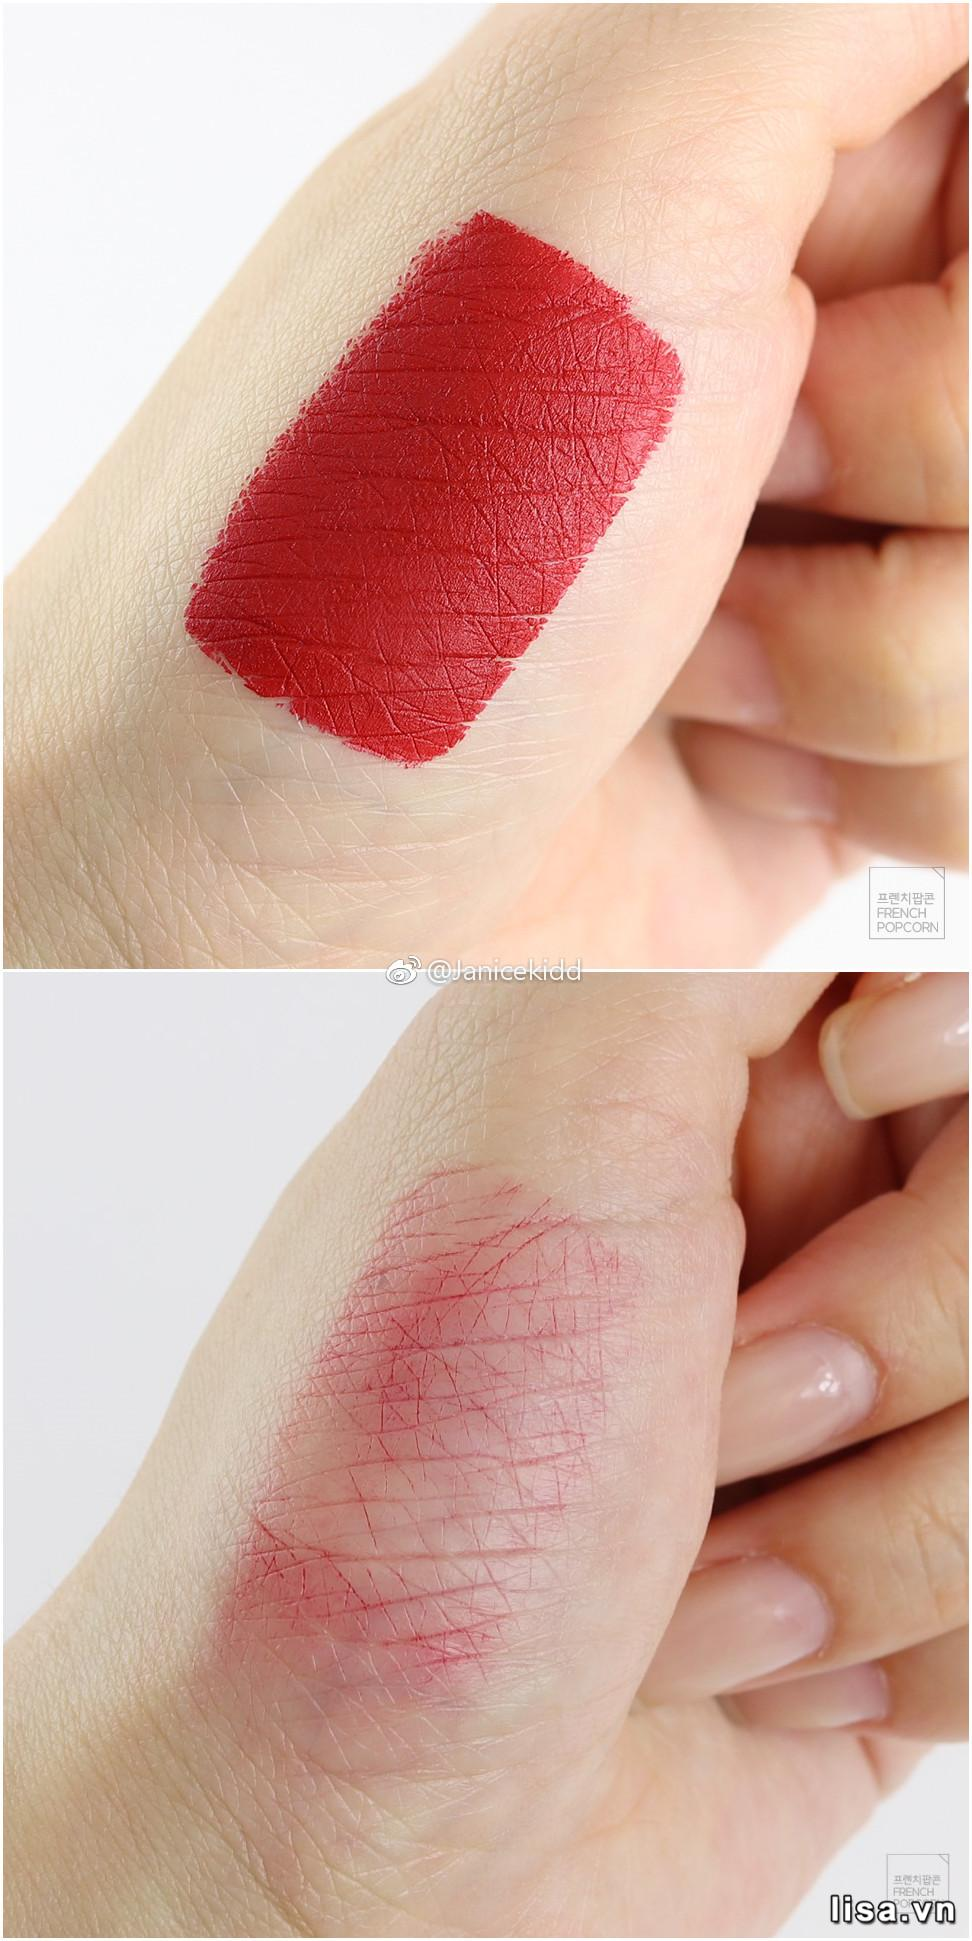 Son YSL The Slim Wild Collector Rouge Paradoxe bền màu tốt